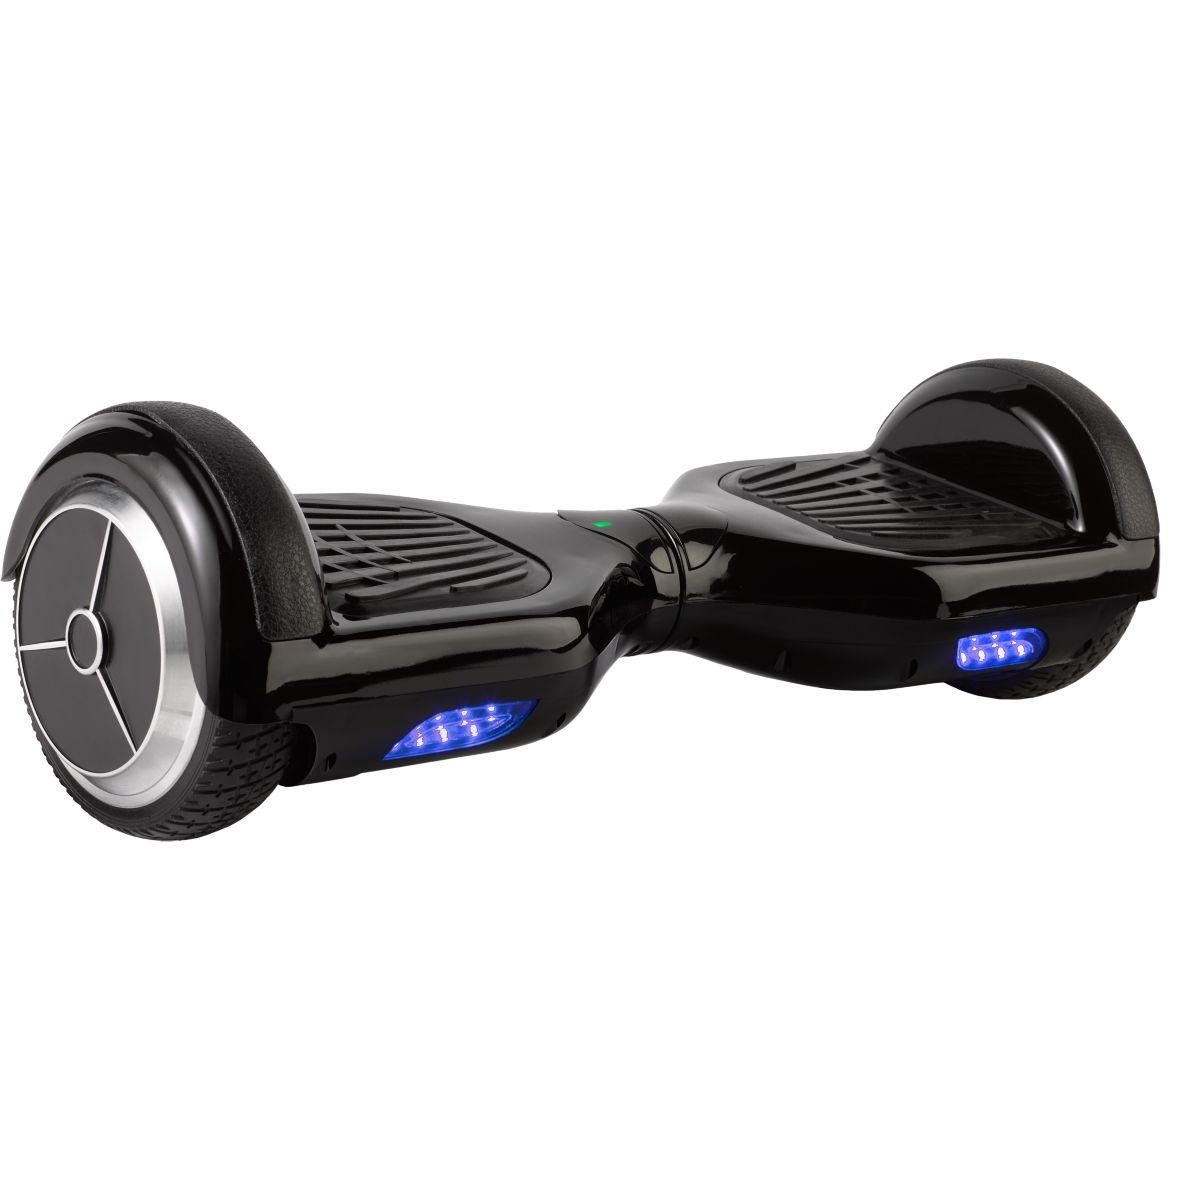 Hoverboard mp man sw100 black - 5% de remise imm�diate avec le code : priv5 (photo)